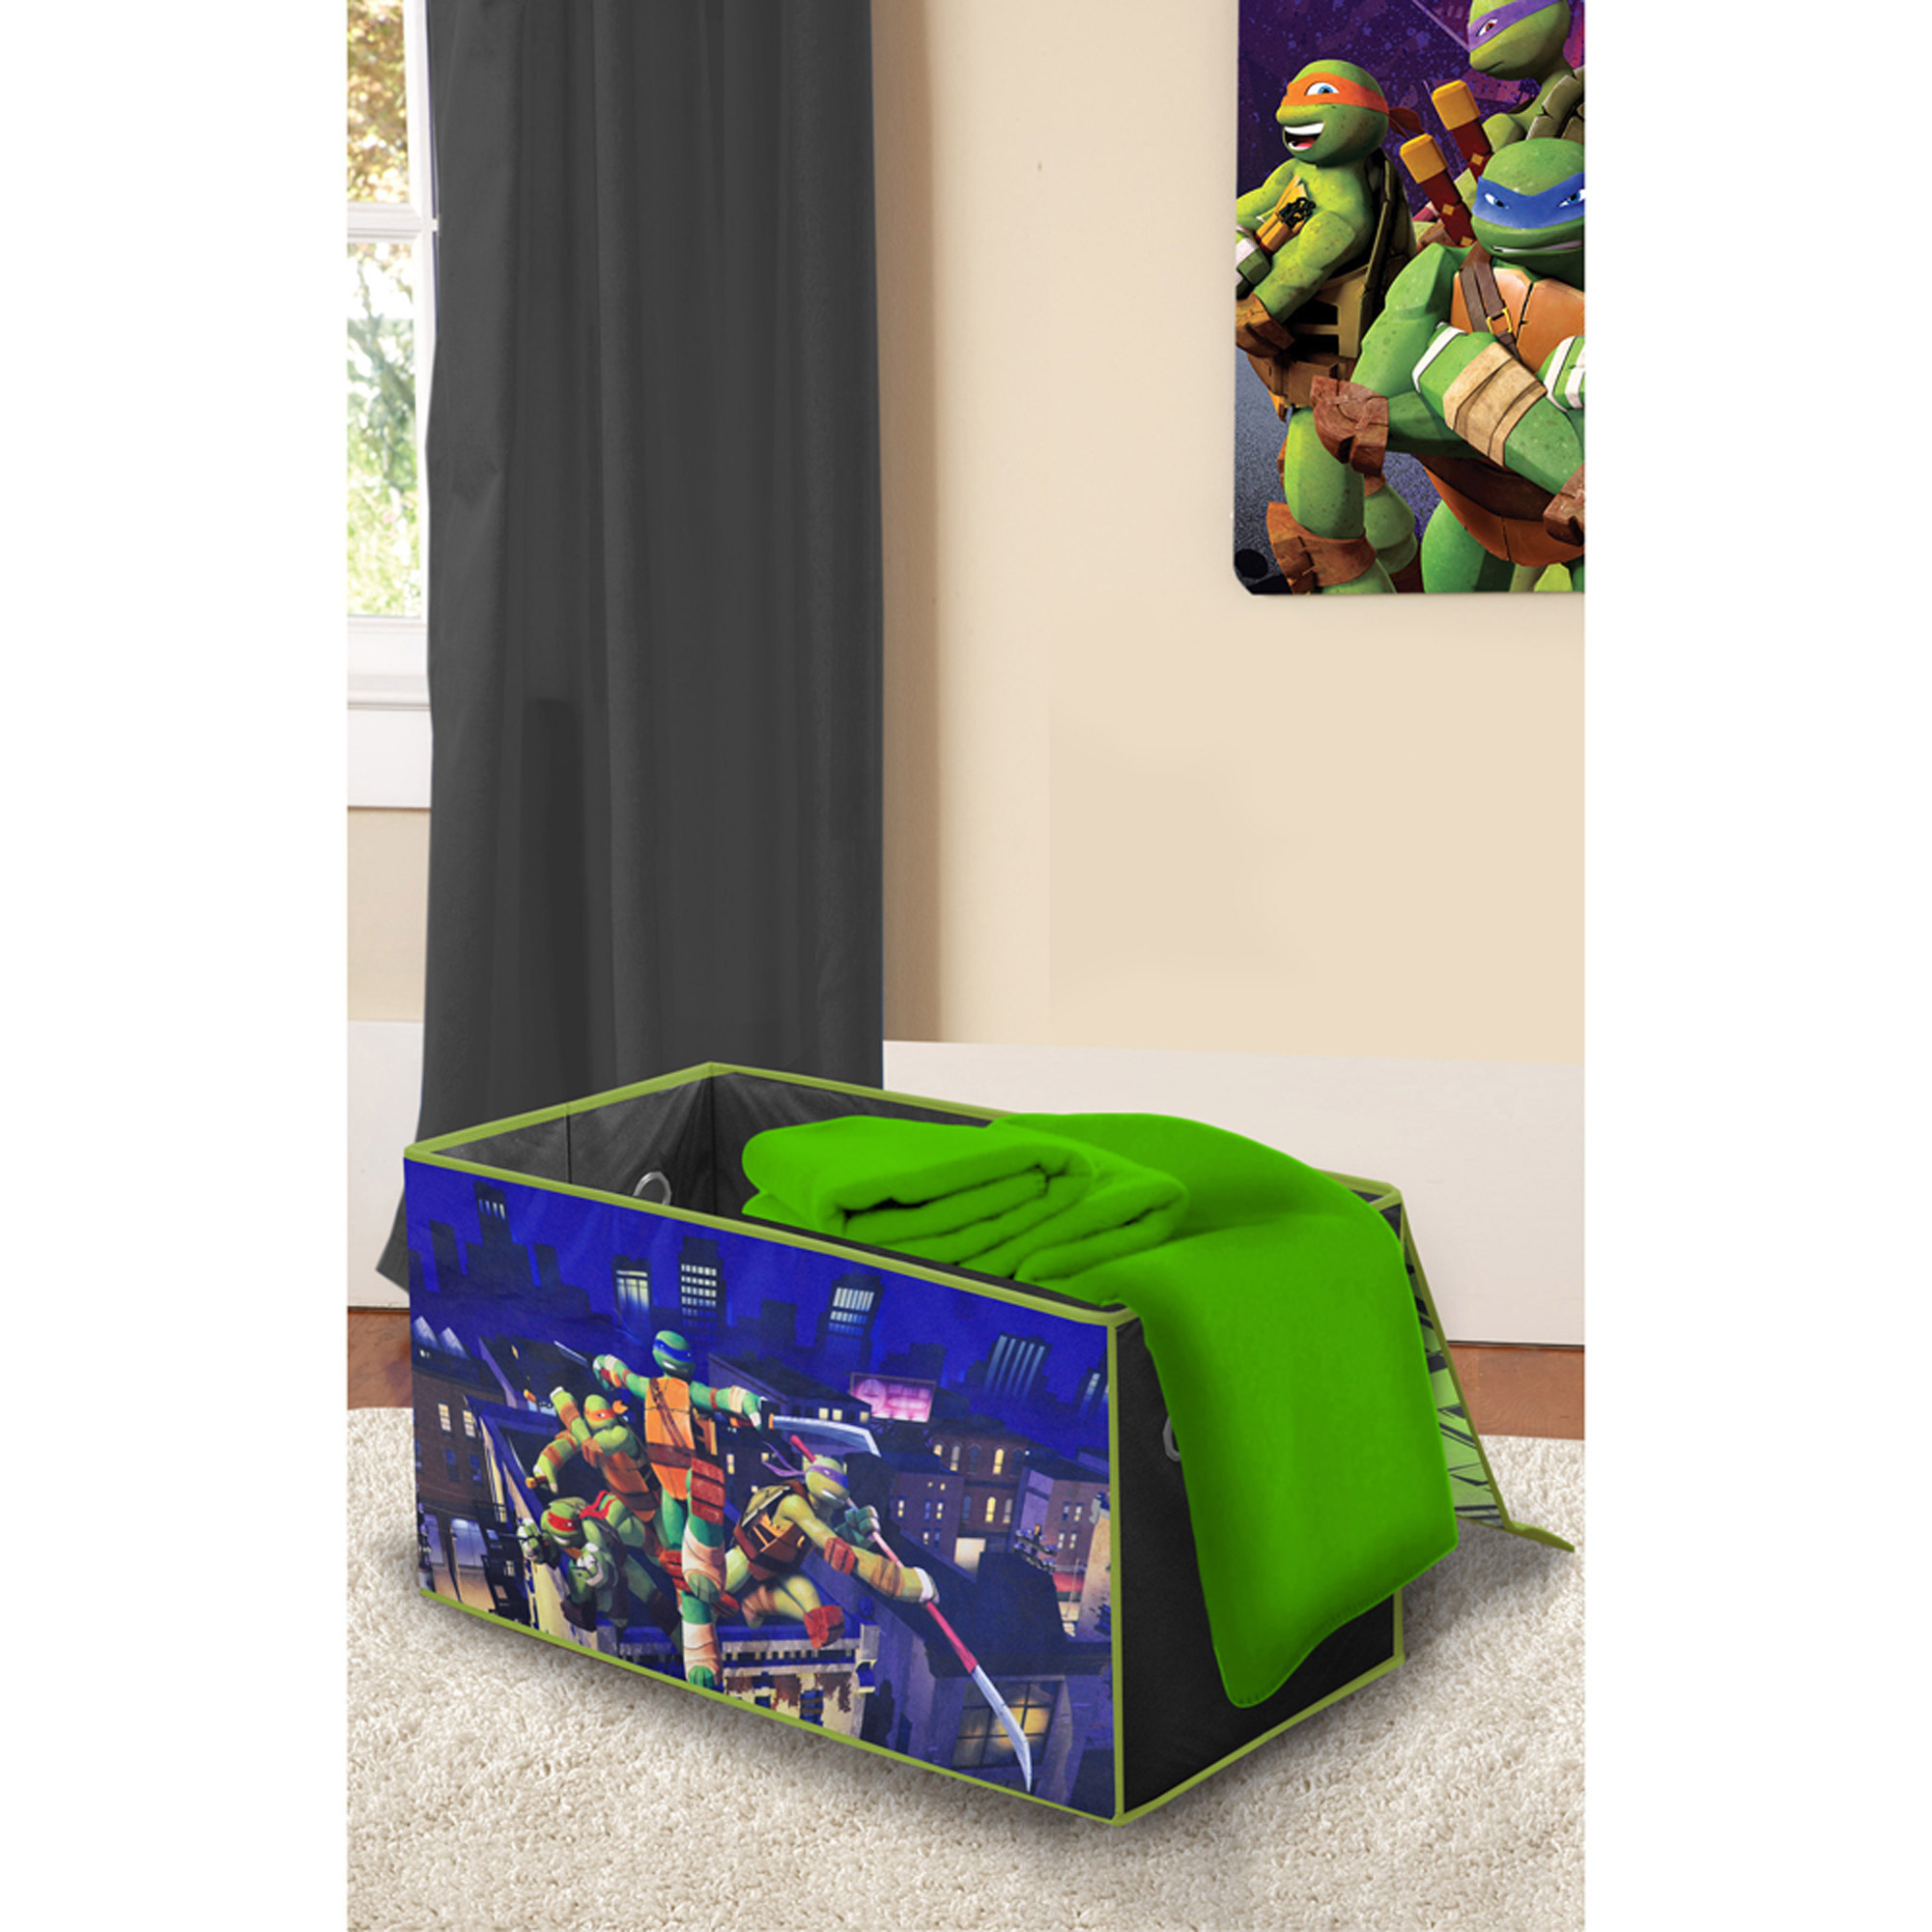 Teenage Mutant Ninja Turtles Oversized Soft Collapsible Storage Toy Trunk